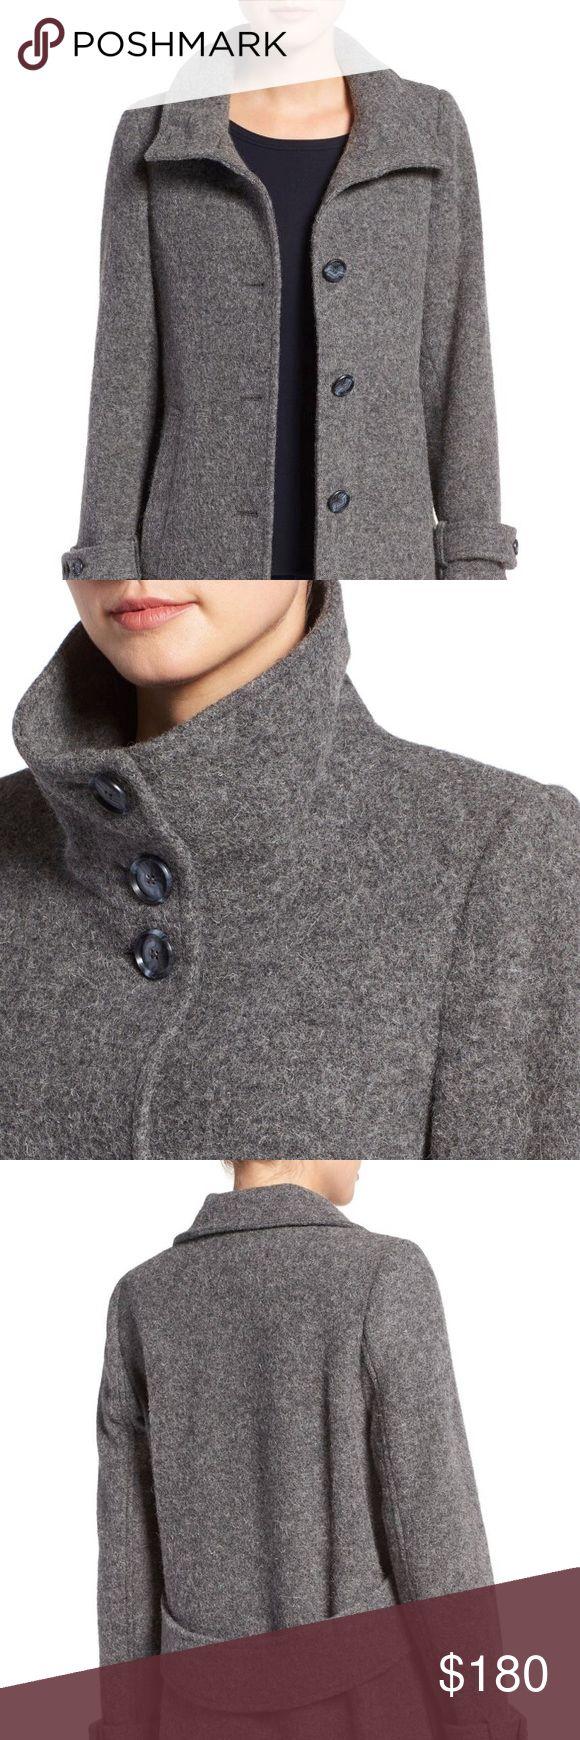 PENDLETON 'Ashbury' Italian Shetland Wool Topper ReLove A back half Belt tempers the easy A-line cut of timeless button front topper fashioned from lush Italian Wool with a convertible stand collar and belted cuffs! Pendleton Jackets & Coats